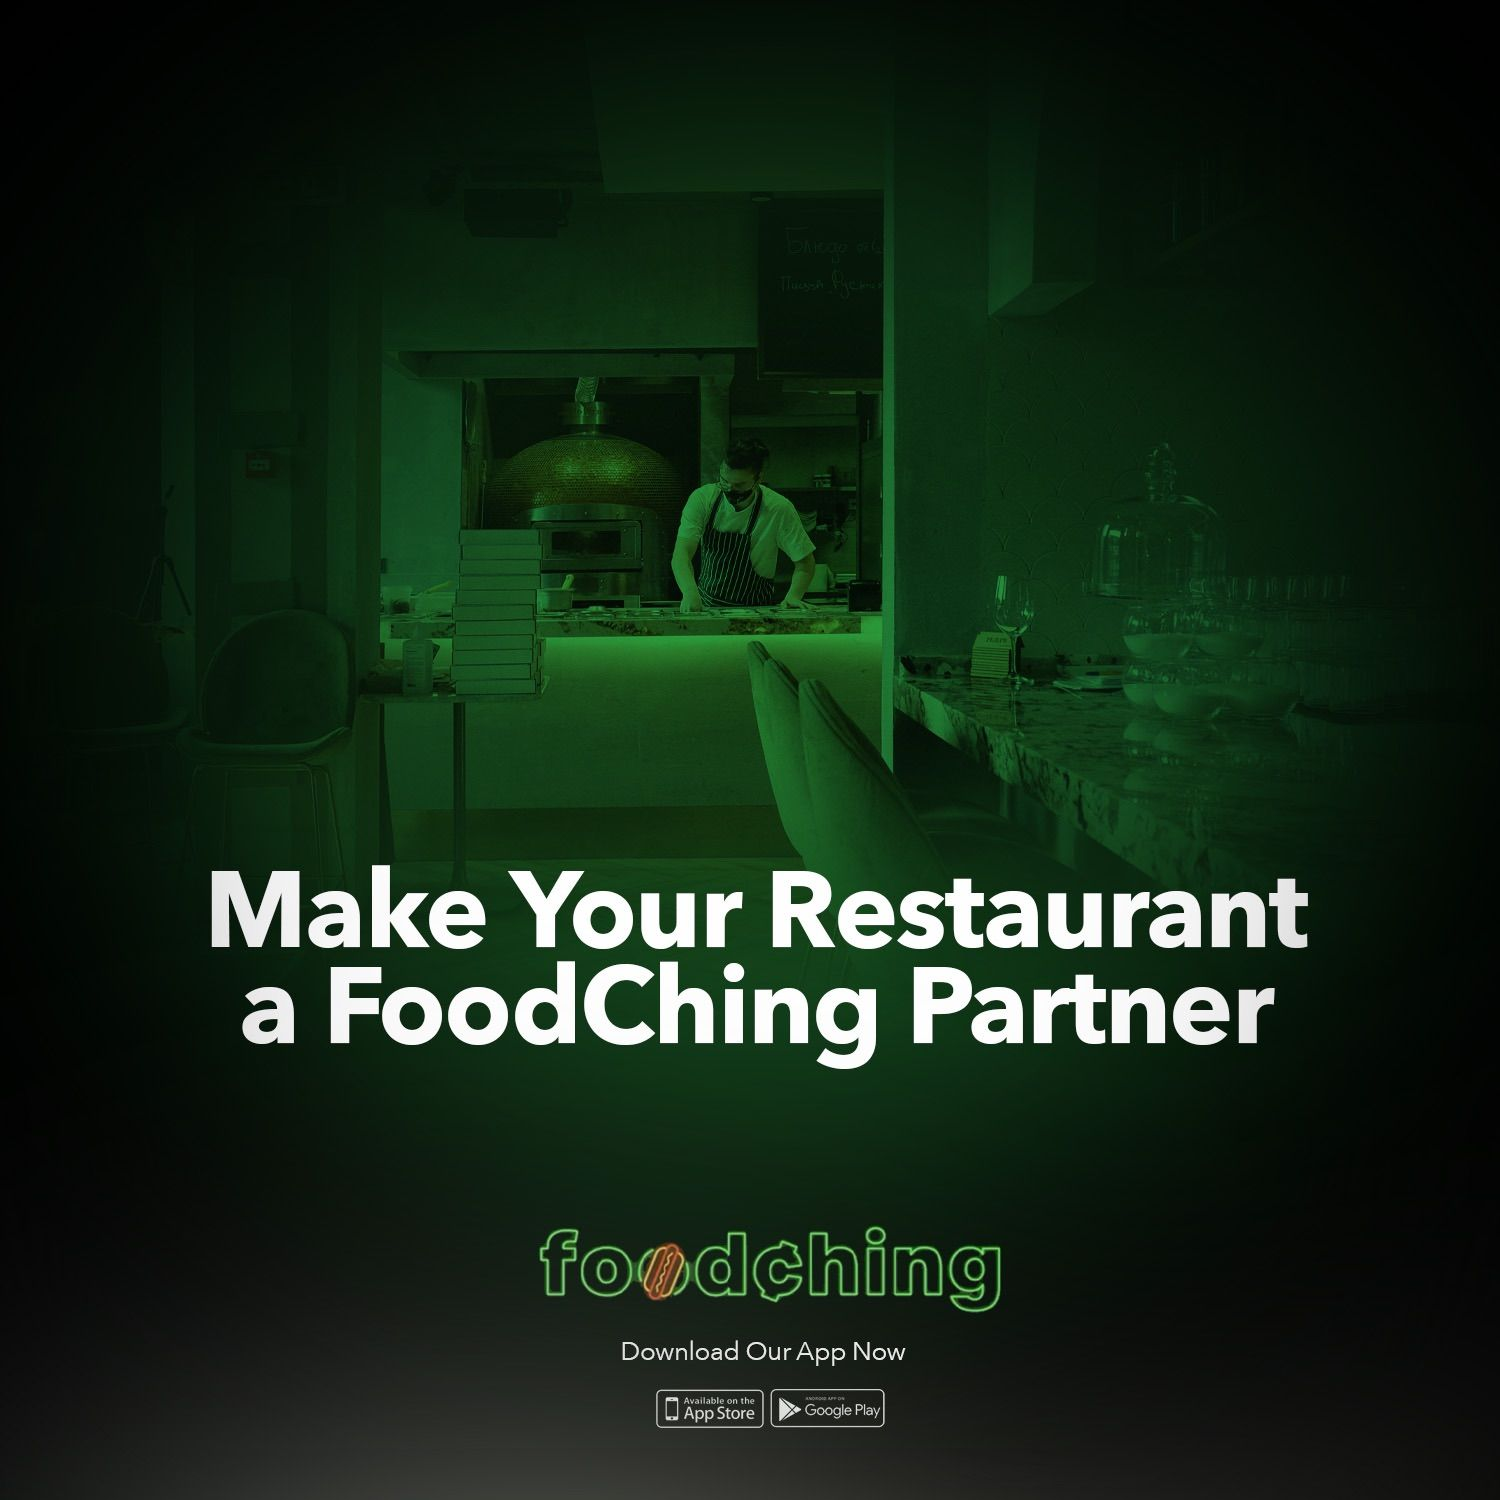 FoodChing Food & Drink Delivery Disrupting Market with FREE DELIVERY